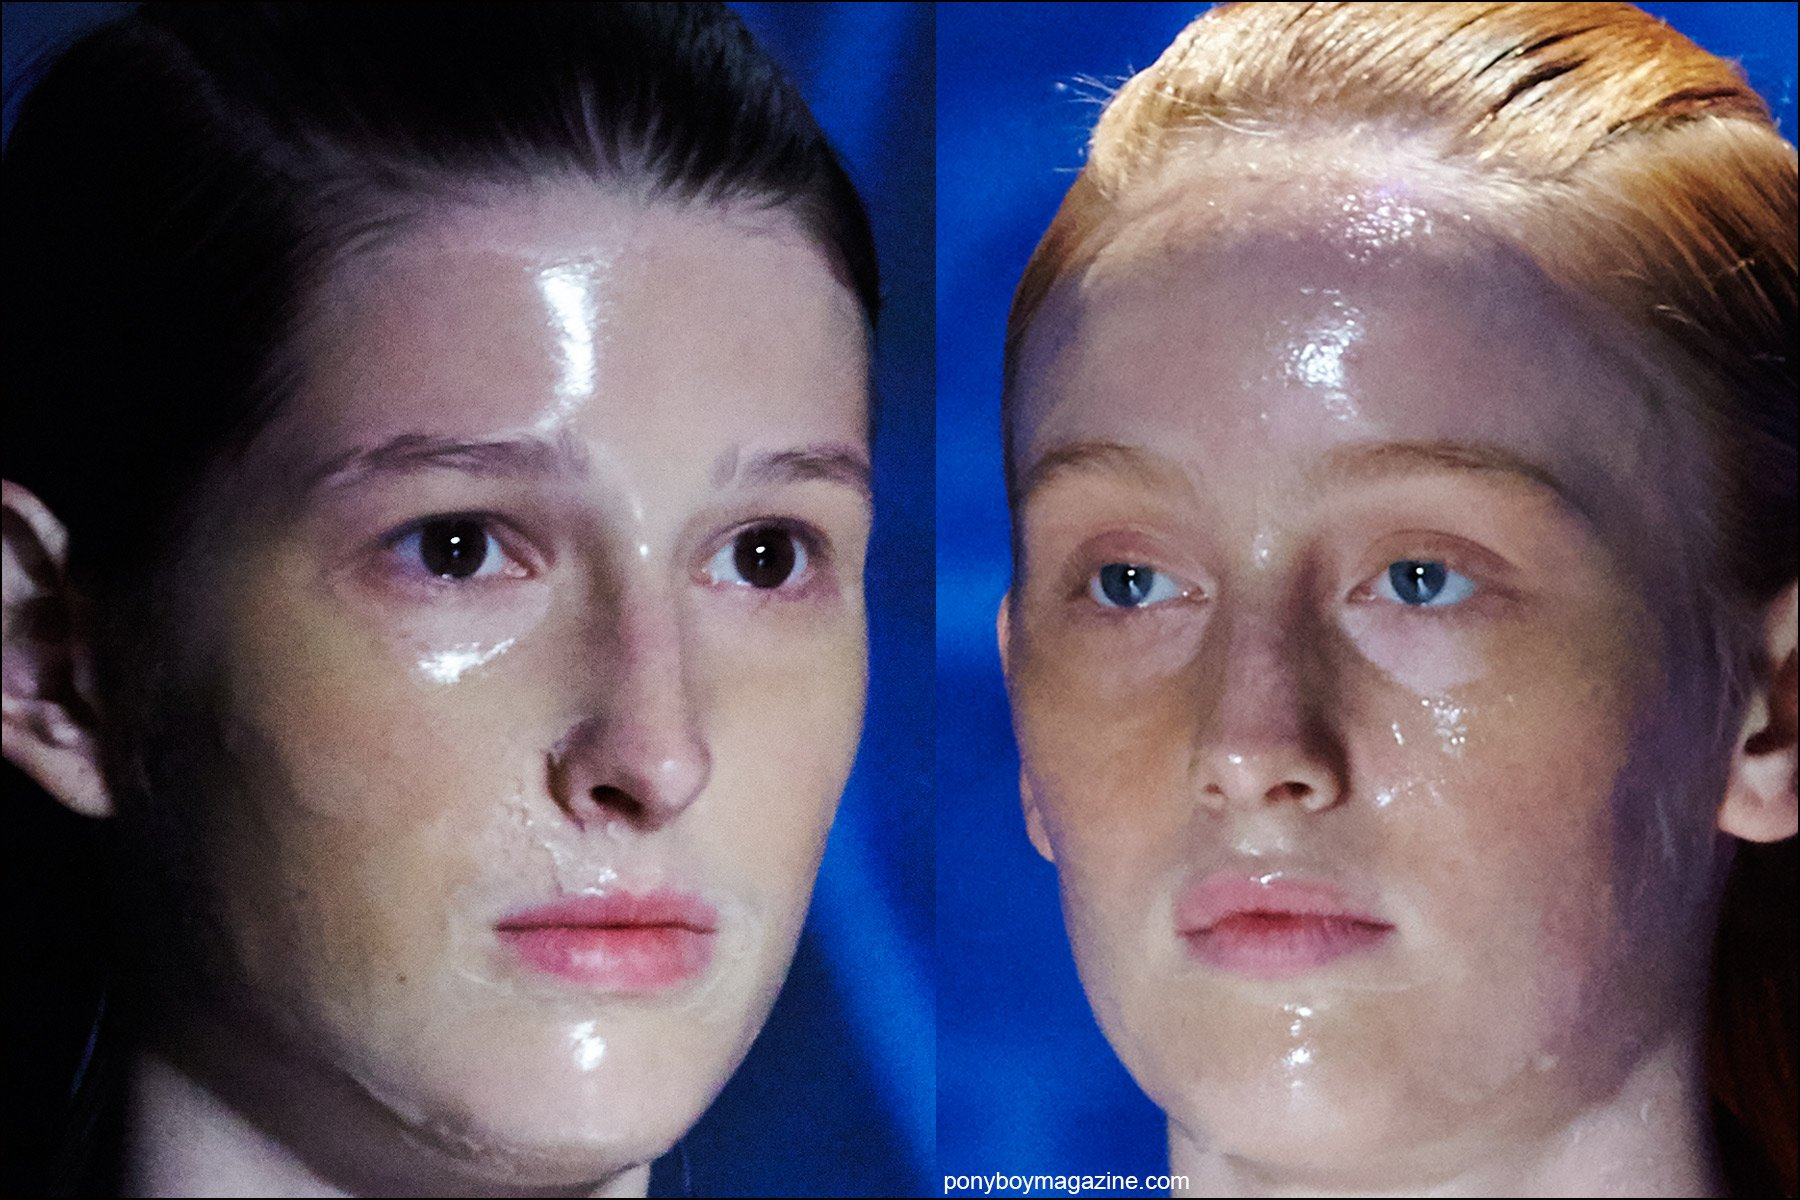 Latex makeup photographed on female models on the runway at the threeASFOUR Spring/Summer 2016 show. Photographs by Alexander Thompson for Ponyboy magazine NY.